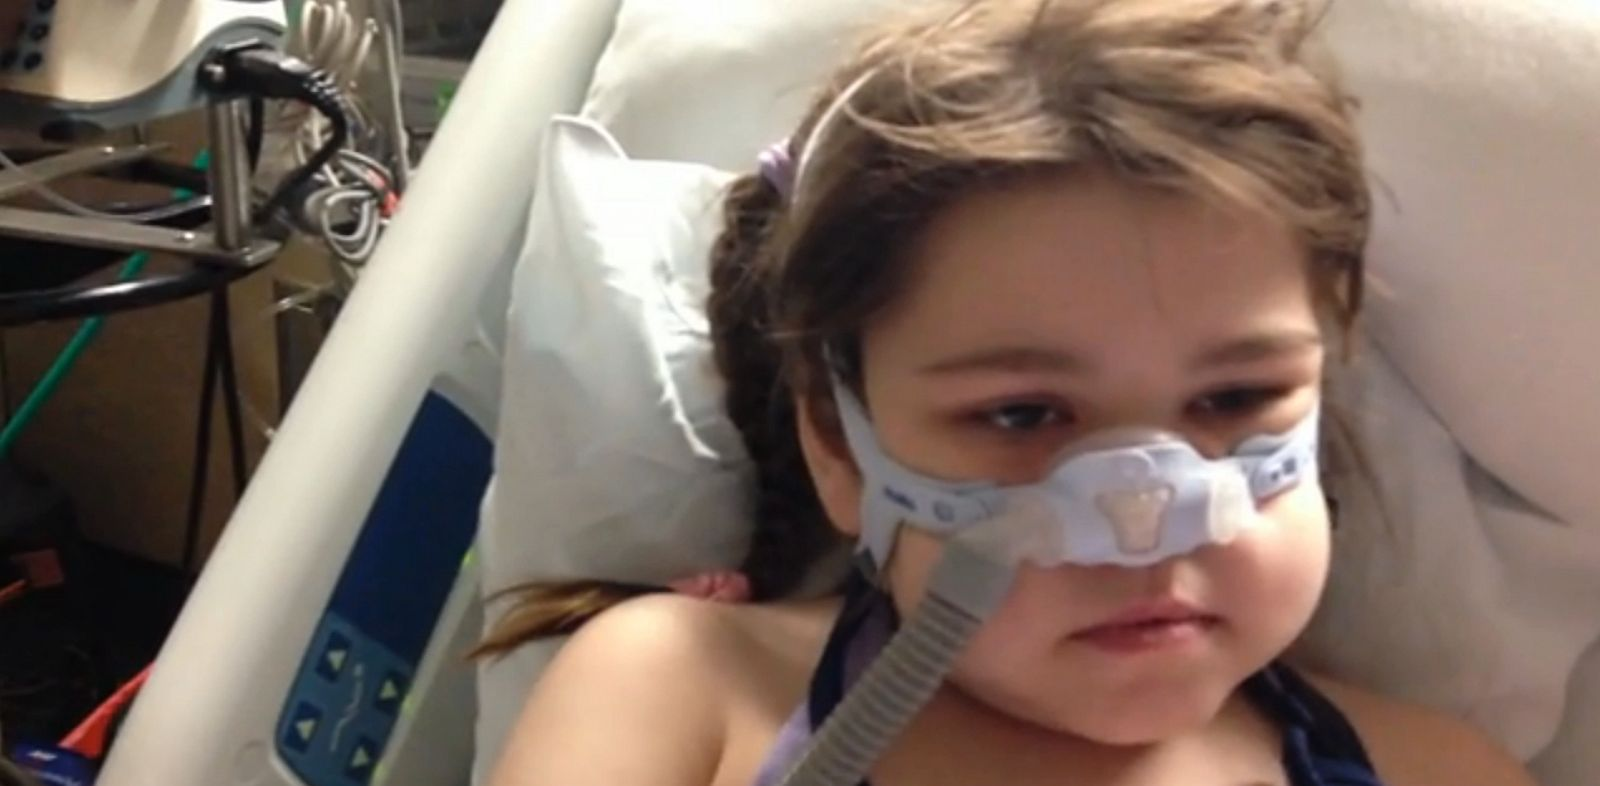 PHOTO: Sarah Murnaghan is shown at Childrens Hospital of Philadelphia in this still from video.